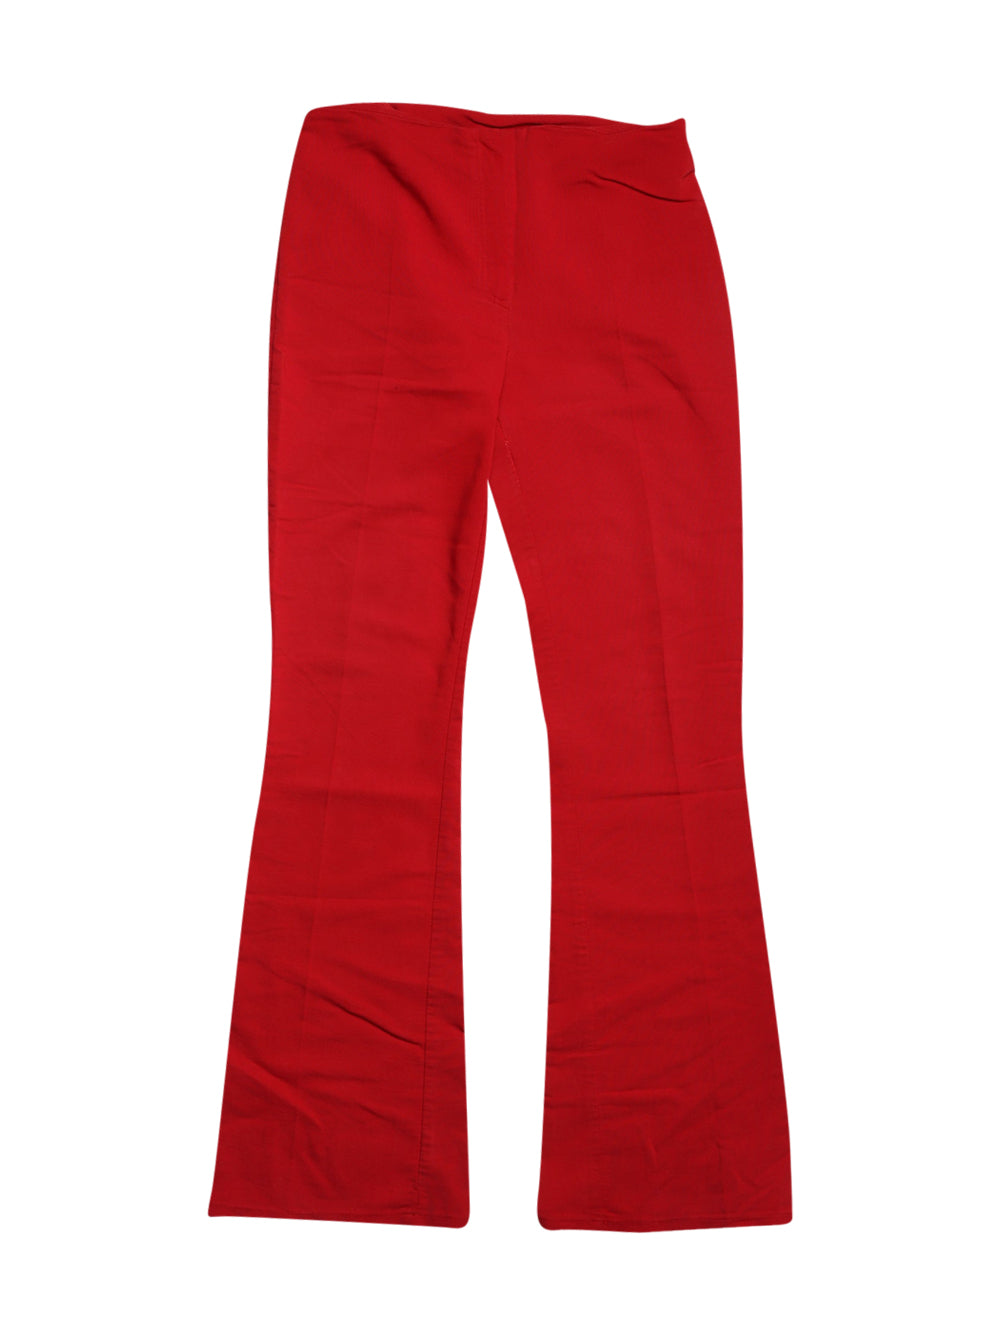 Front photo of Preloved machinchose Red Woman's trousers - size 10/M